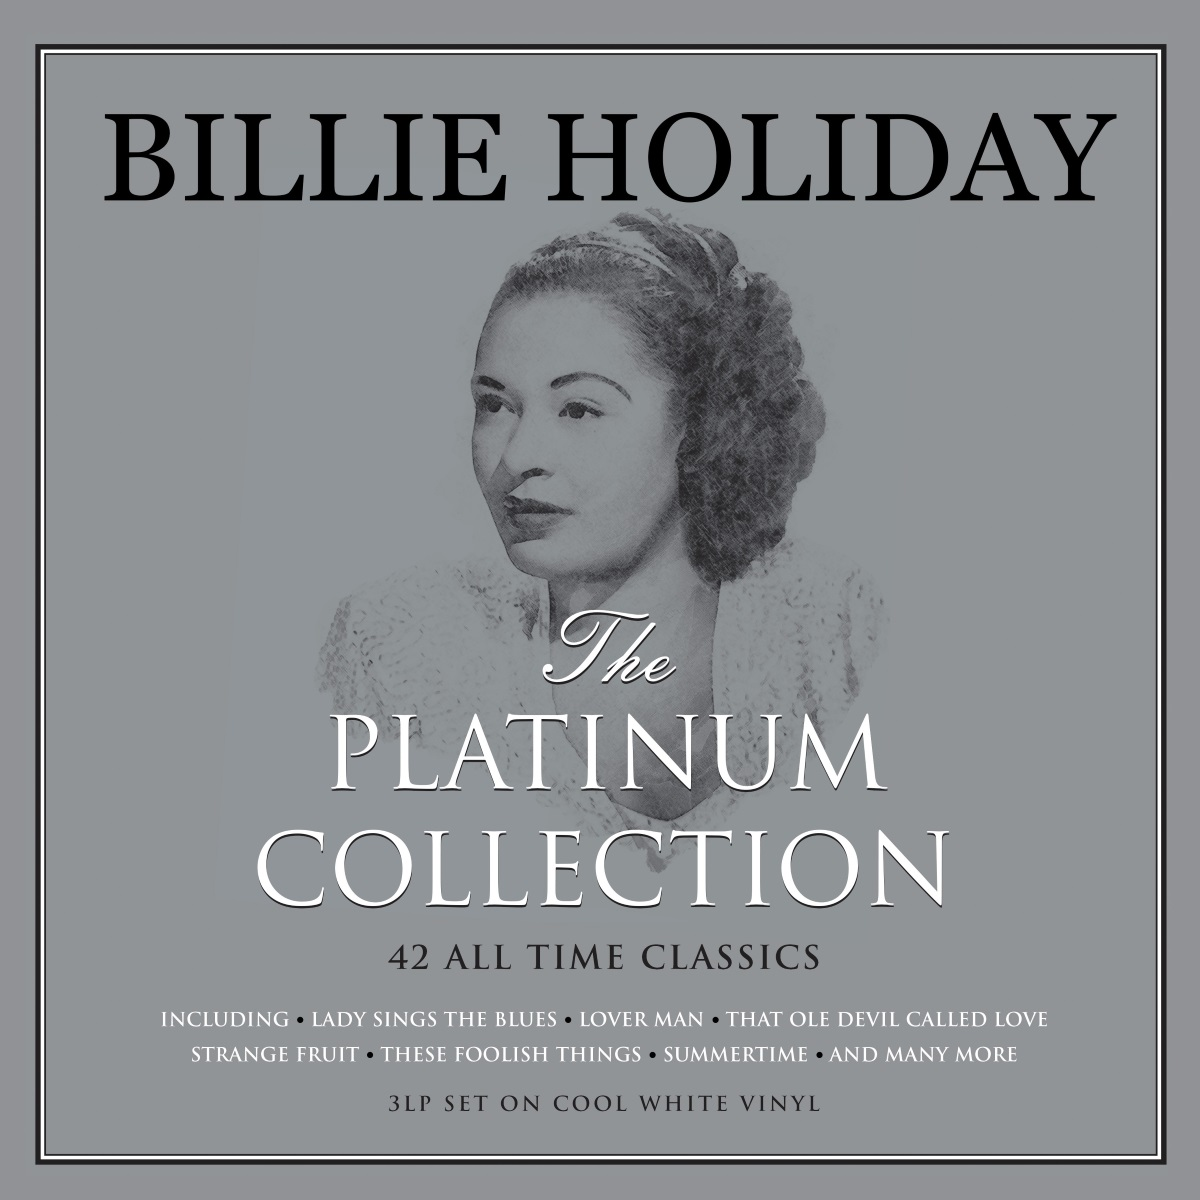 цена Billie Holiday – The Platinum Collection (3 LP) онлайн в 2017 году